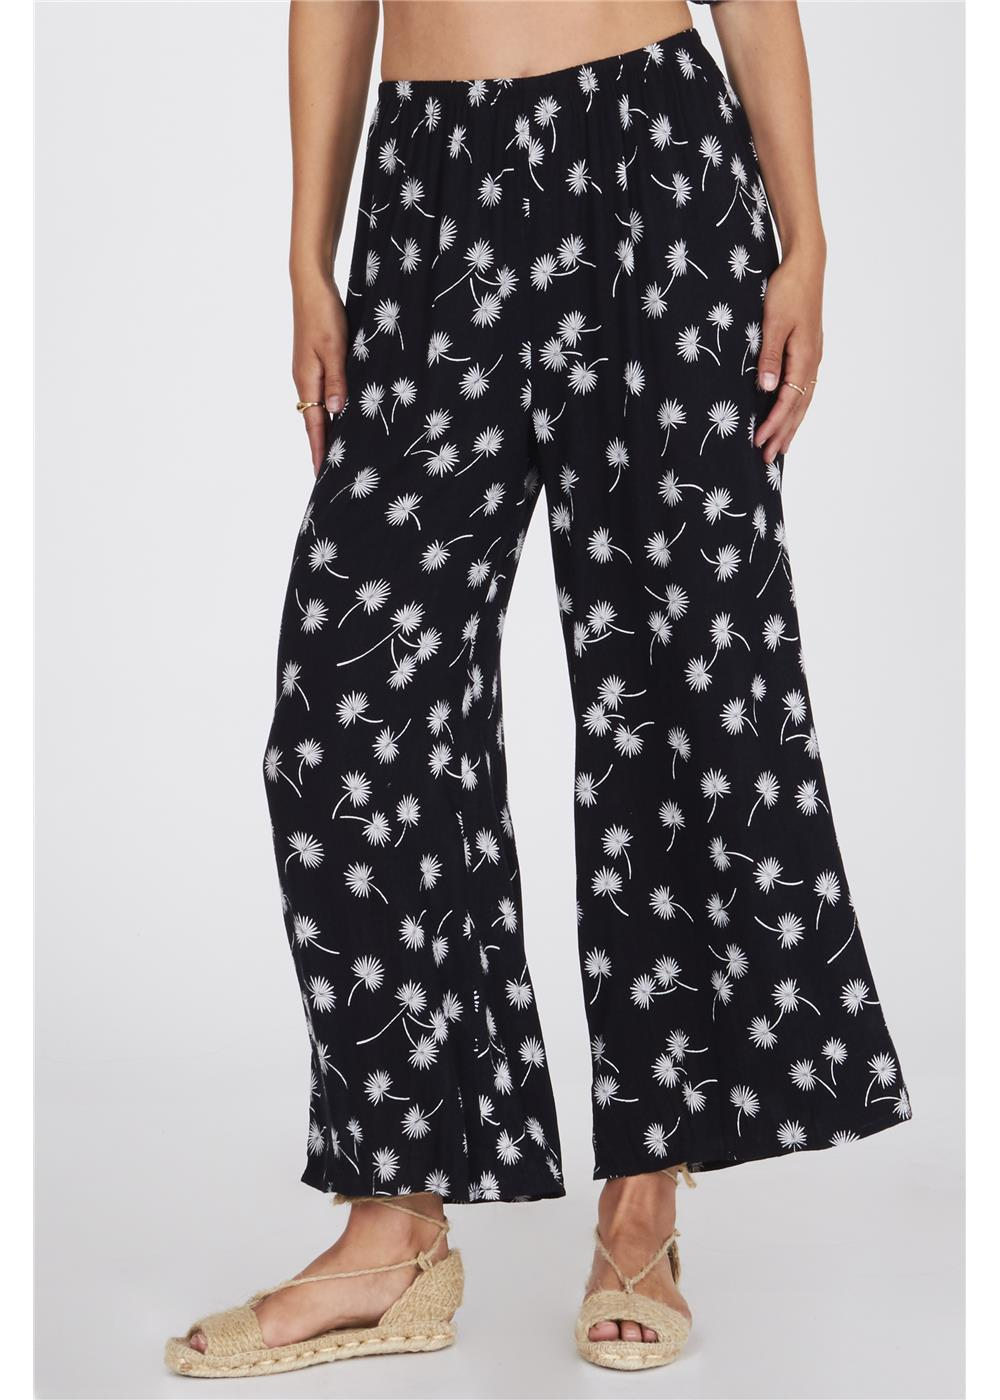 BAREFOOT PANT-BLK